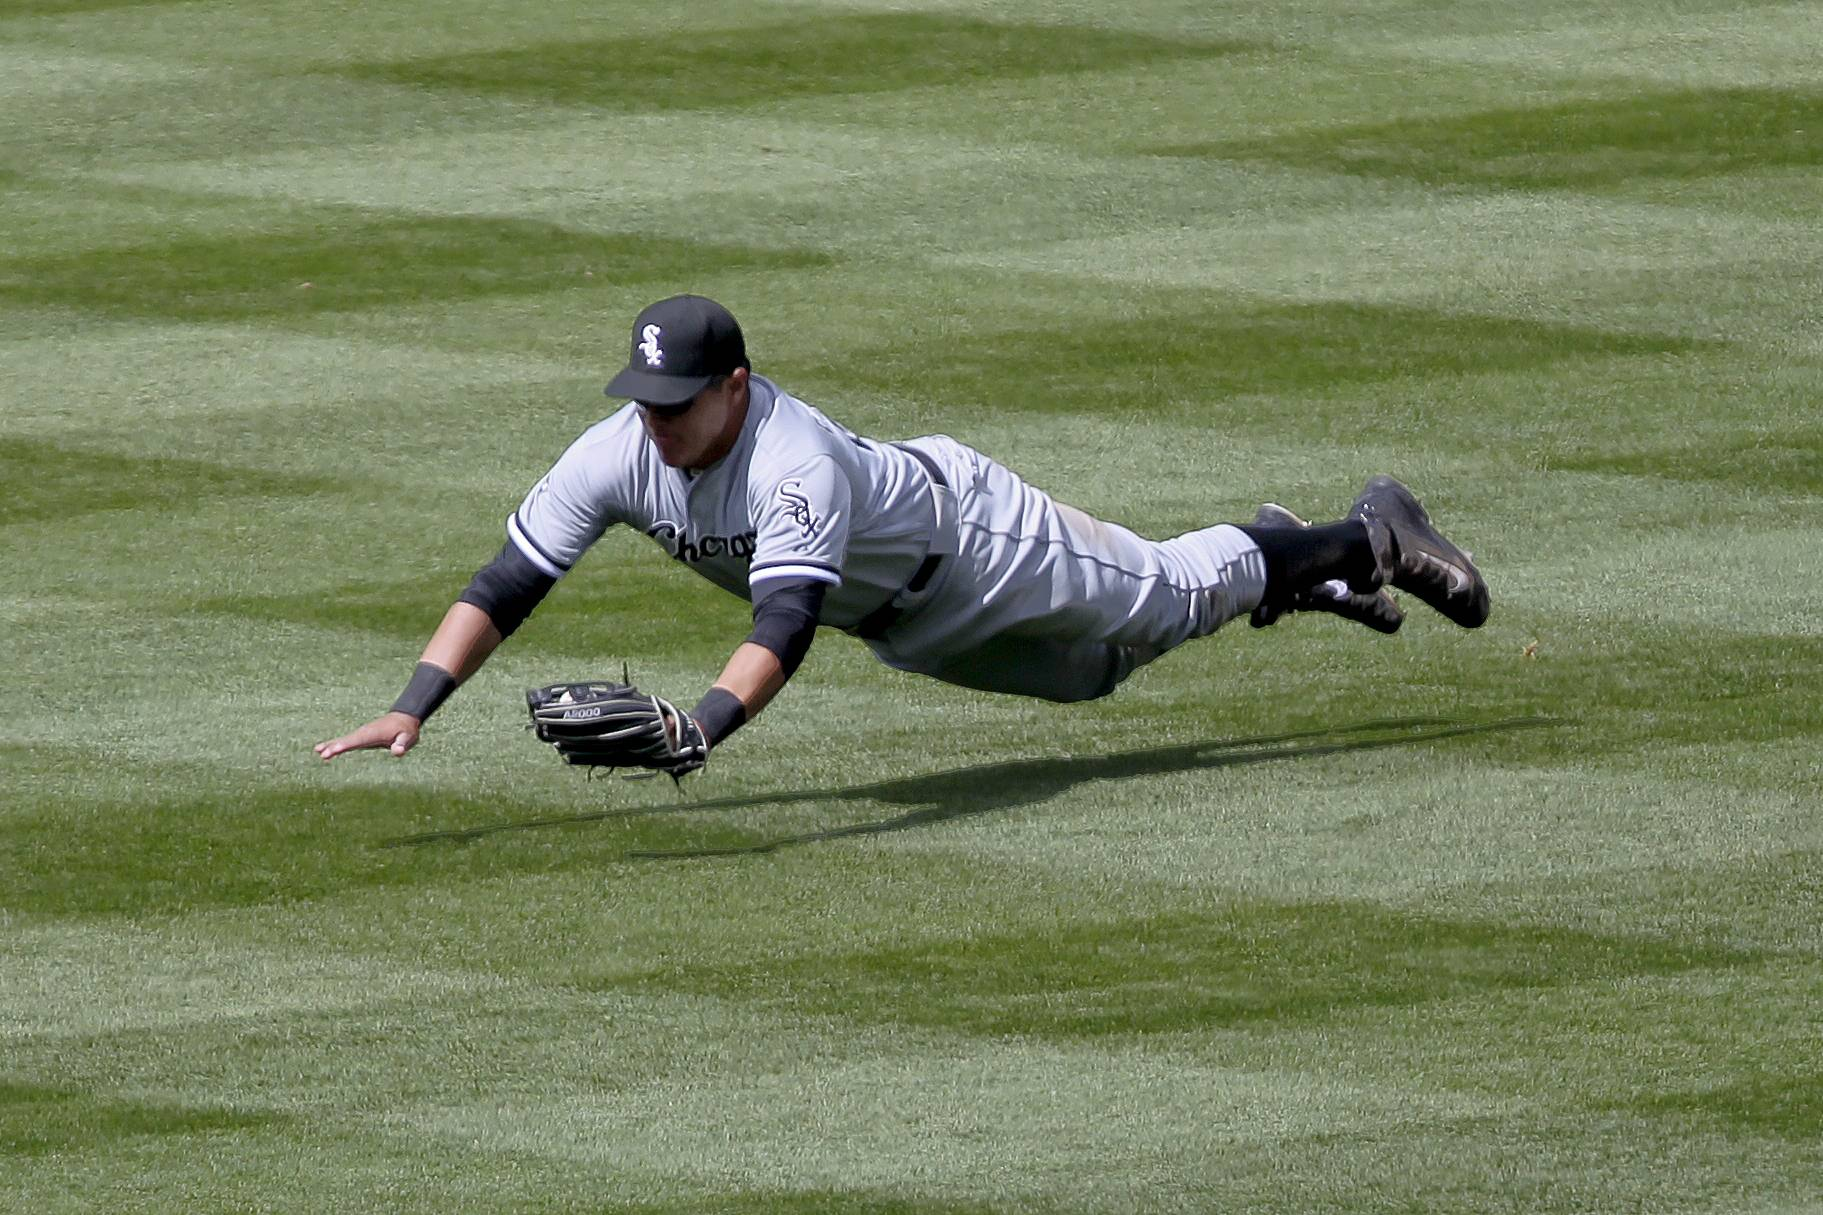 Chicago White Sox Avisail Garcia (26) makes a diving catch on a drive to right by Colorado Rockies DJ LeMahieu during the fourth inning of a baseball game, Wednesday, April 9, 2014, in Denver.